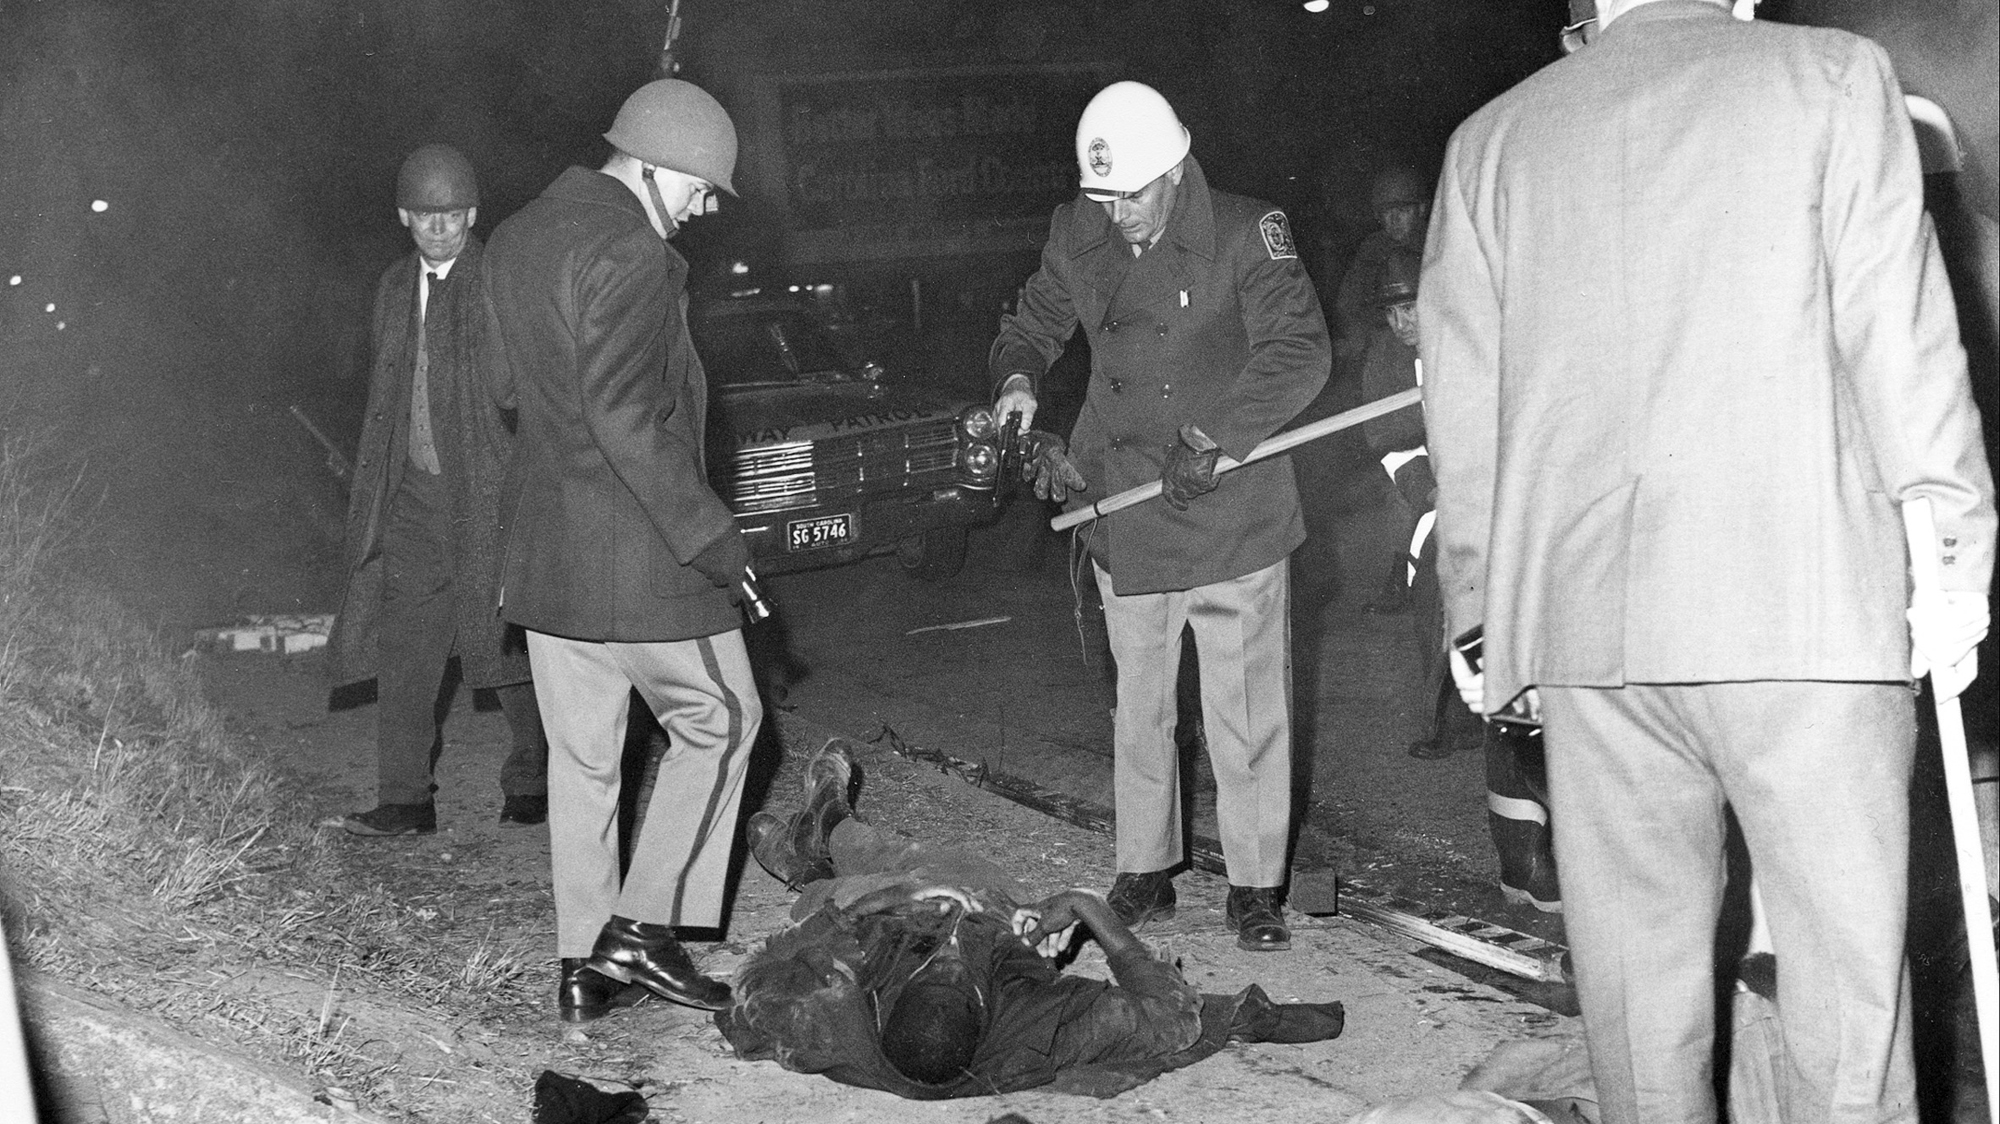 ORANGEBURG MASSACRE 1968